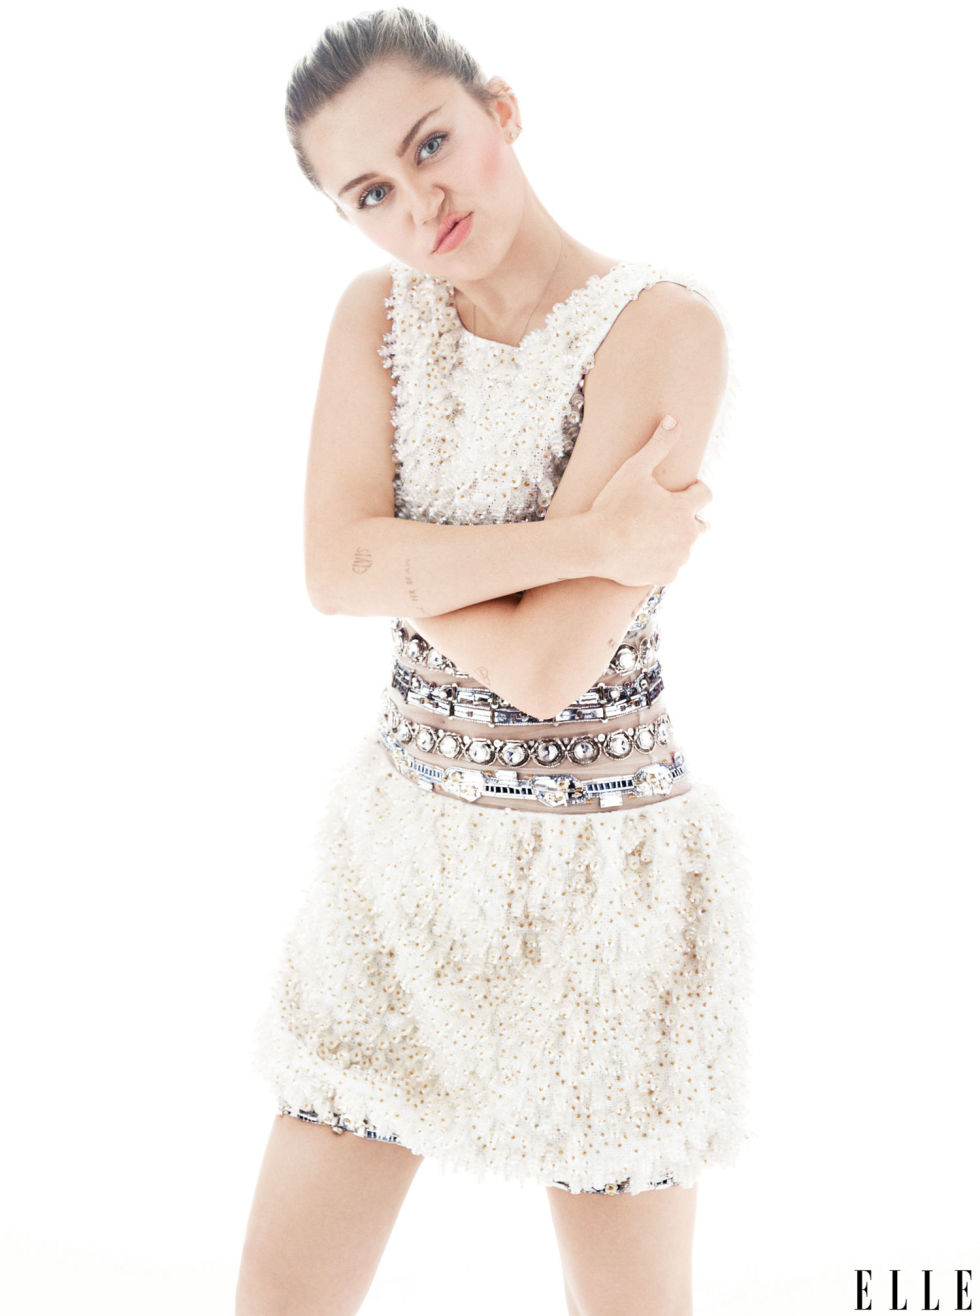 miley cyrus interview miley cyrus talks about fame snapchat what s your current social media philosophy